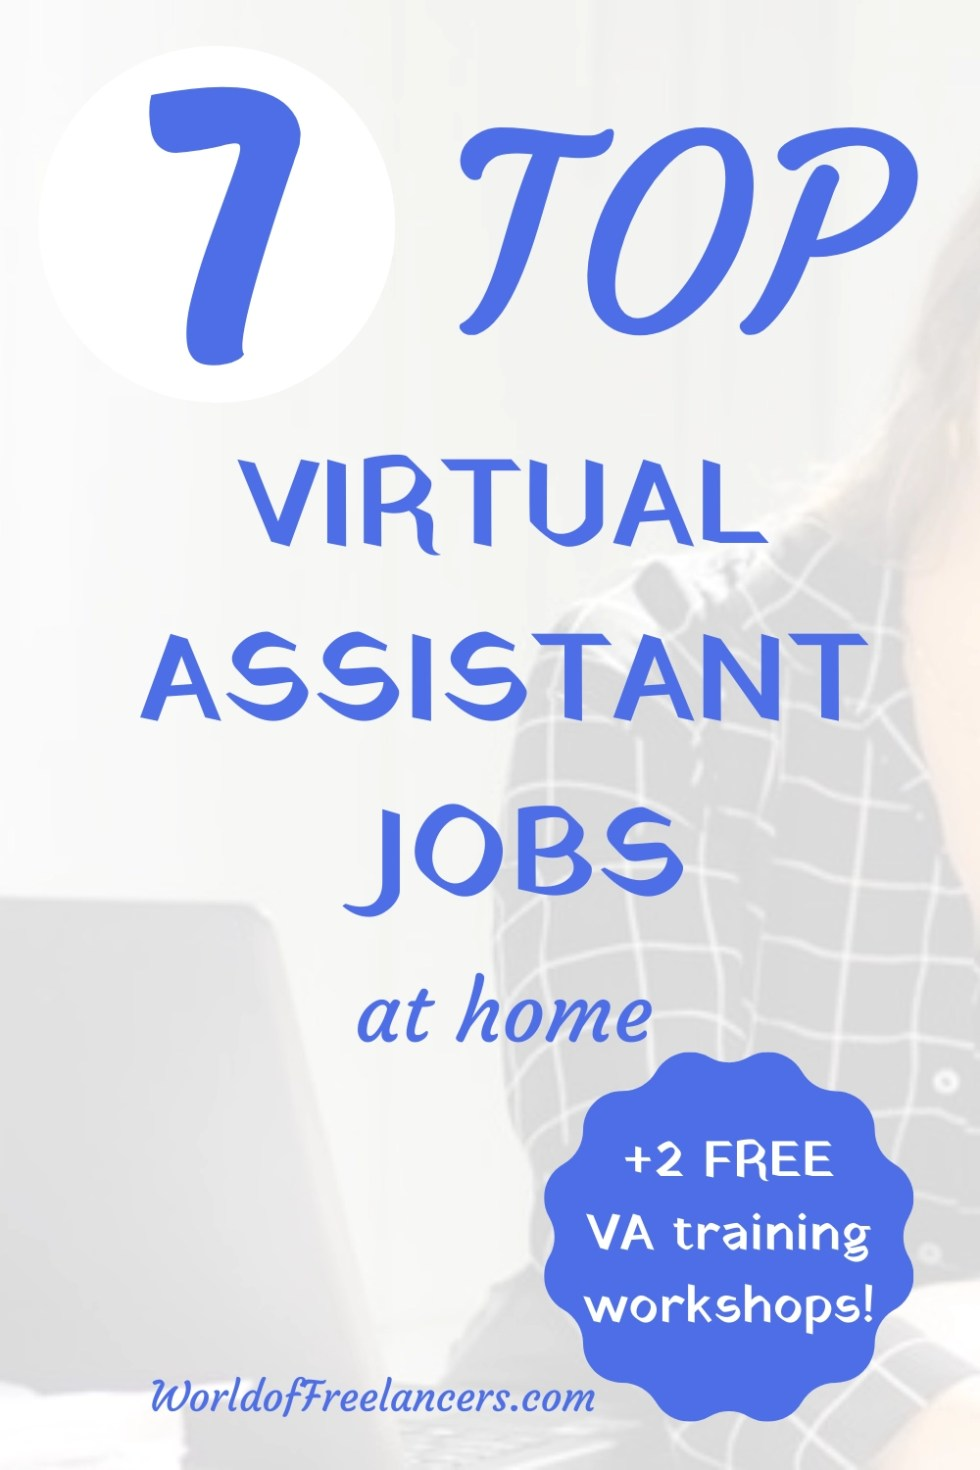 7 top virtual assistant jobs at home plus 2 free VA training courses